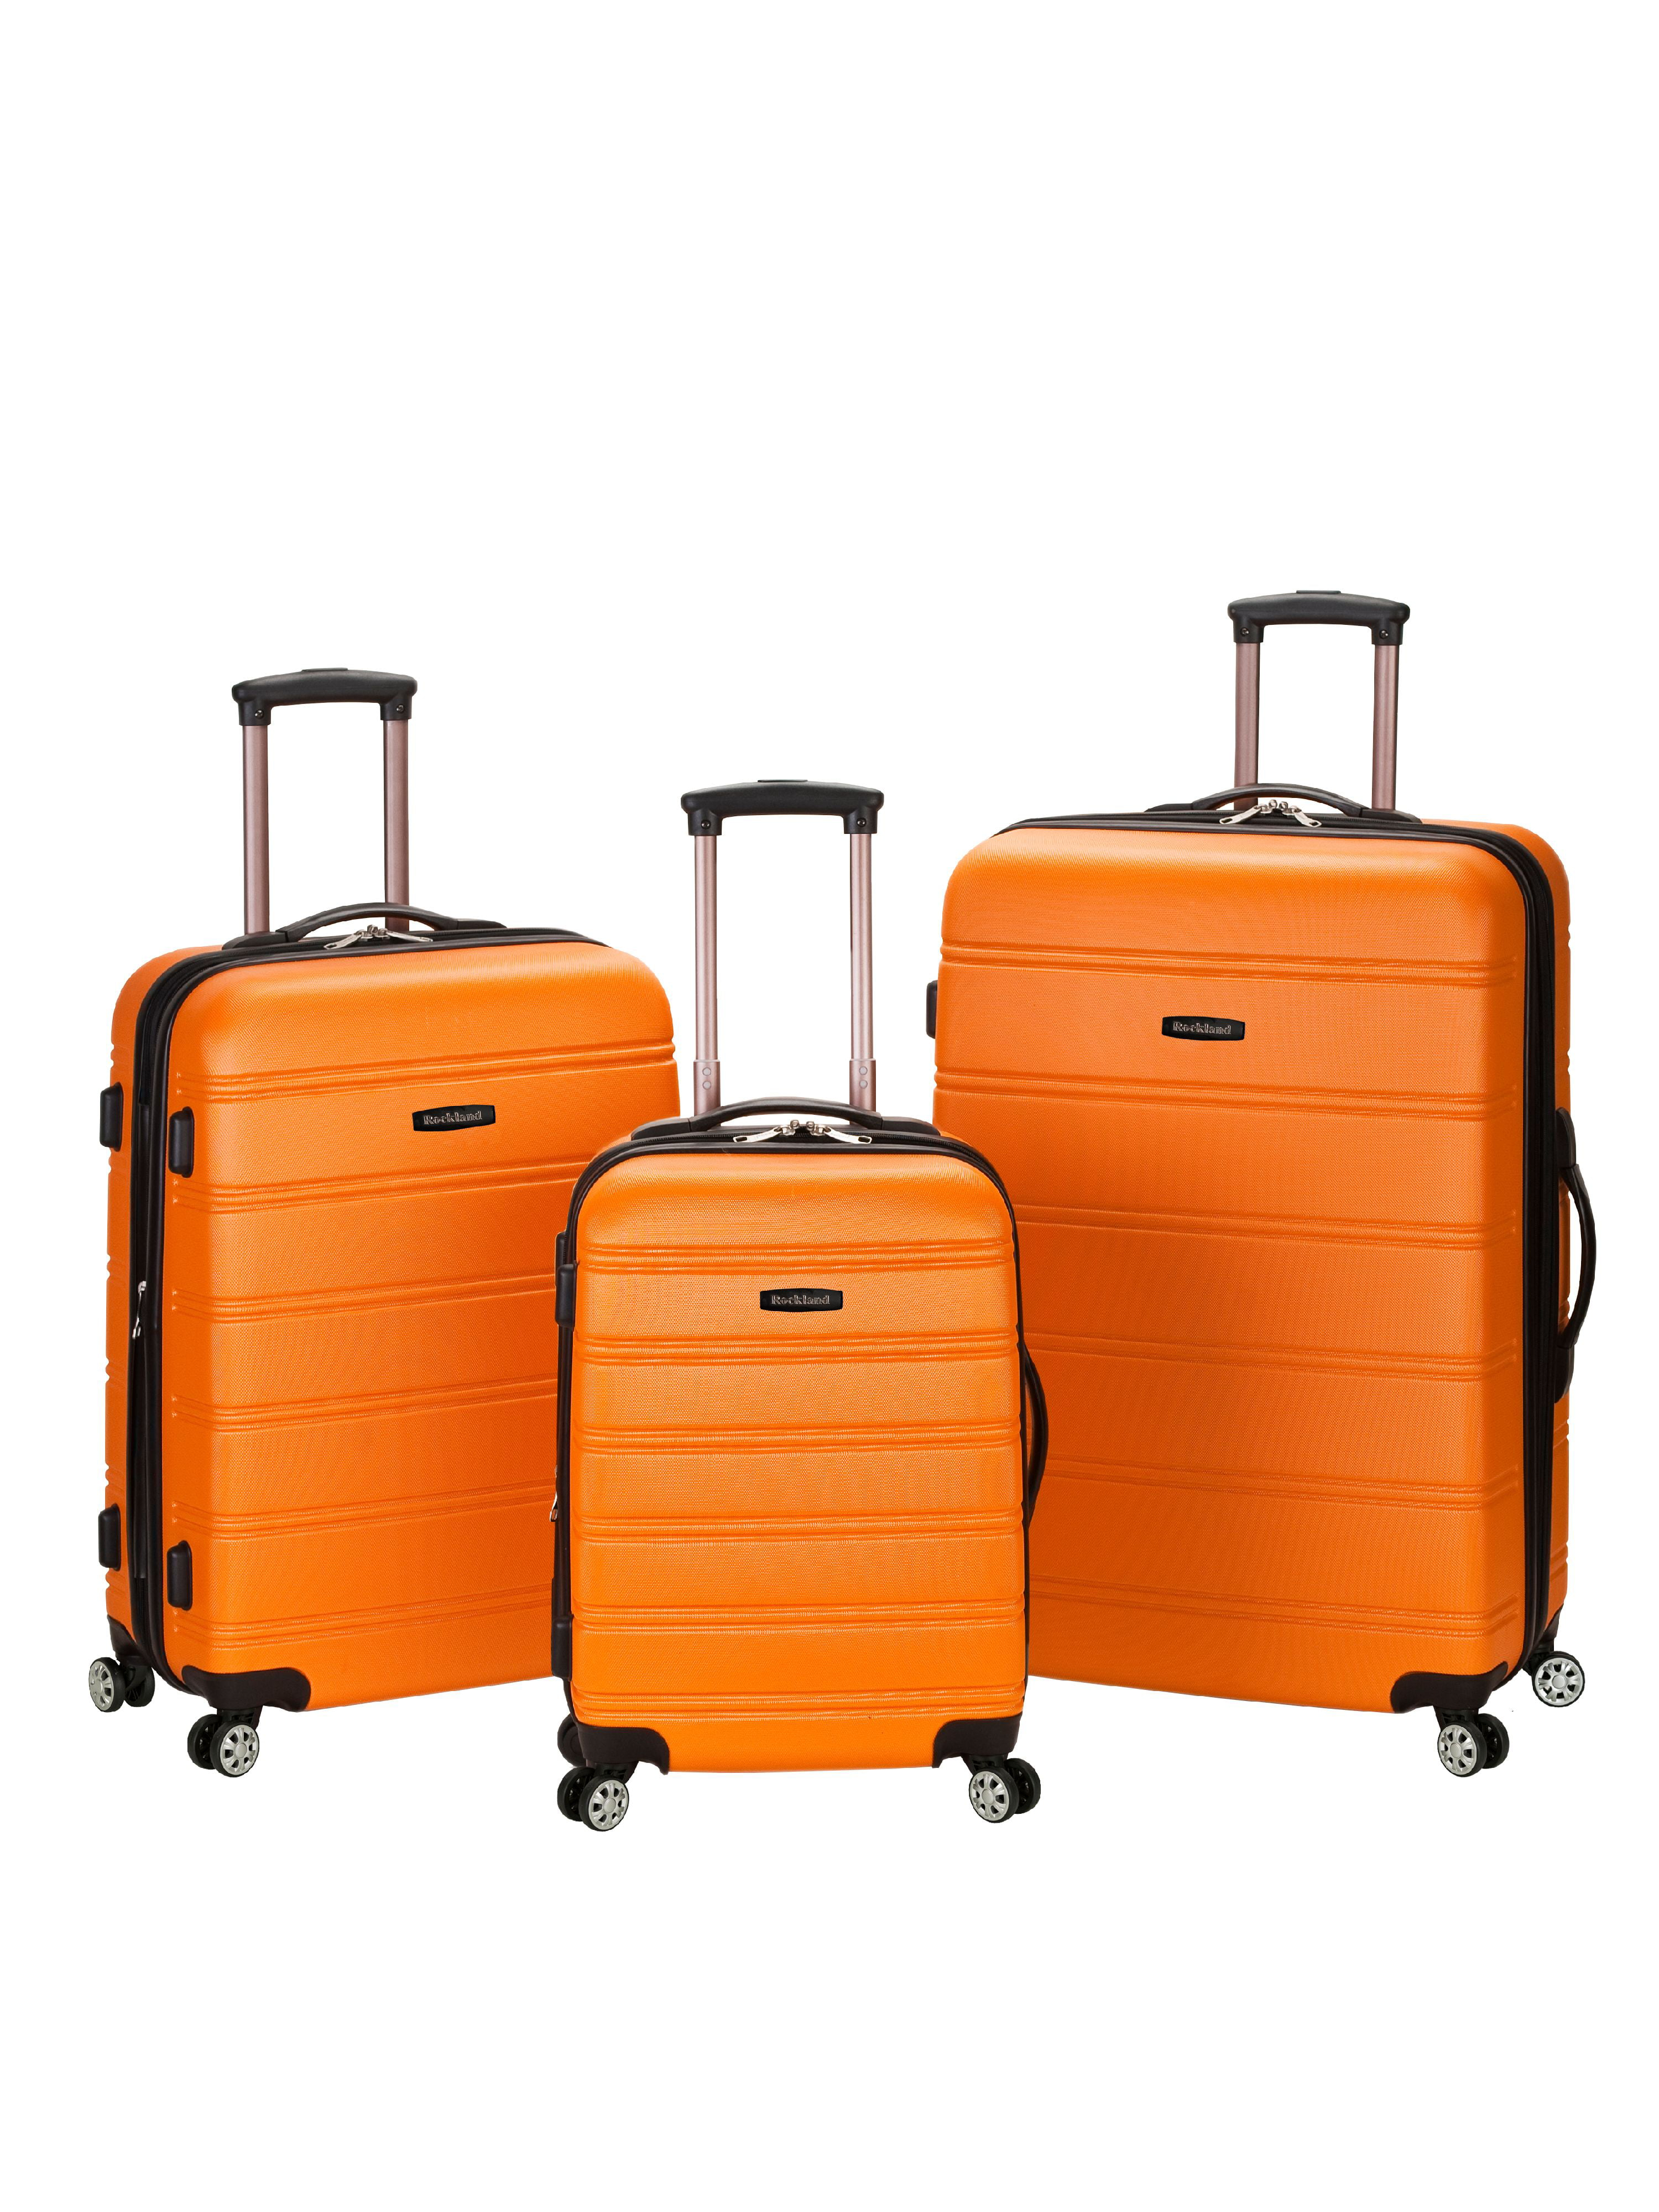 Rockland Melbourne 3pc Expandable ABS Spinner Luggage Set - Orange